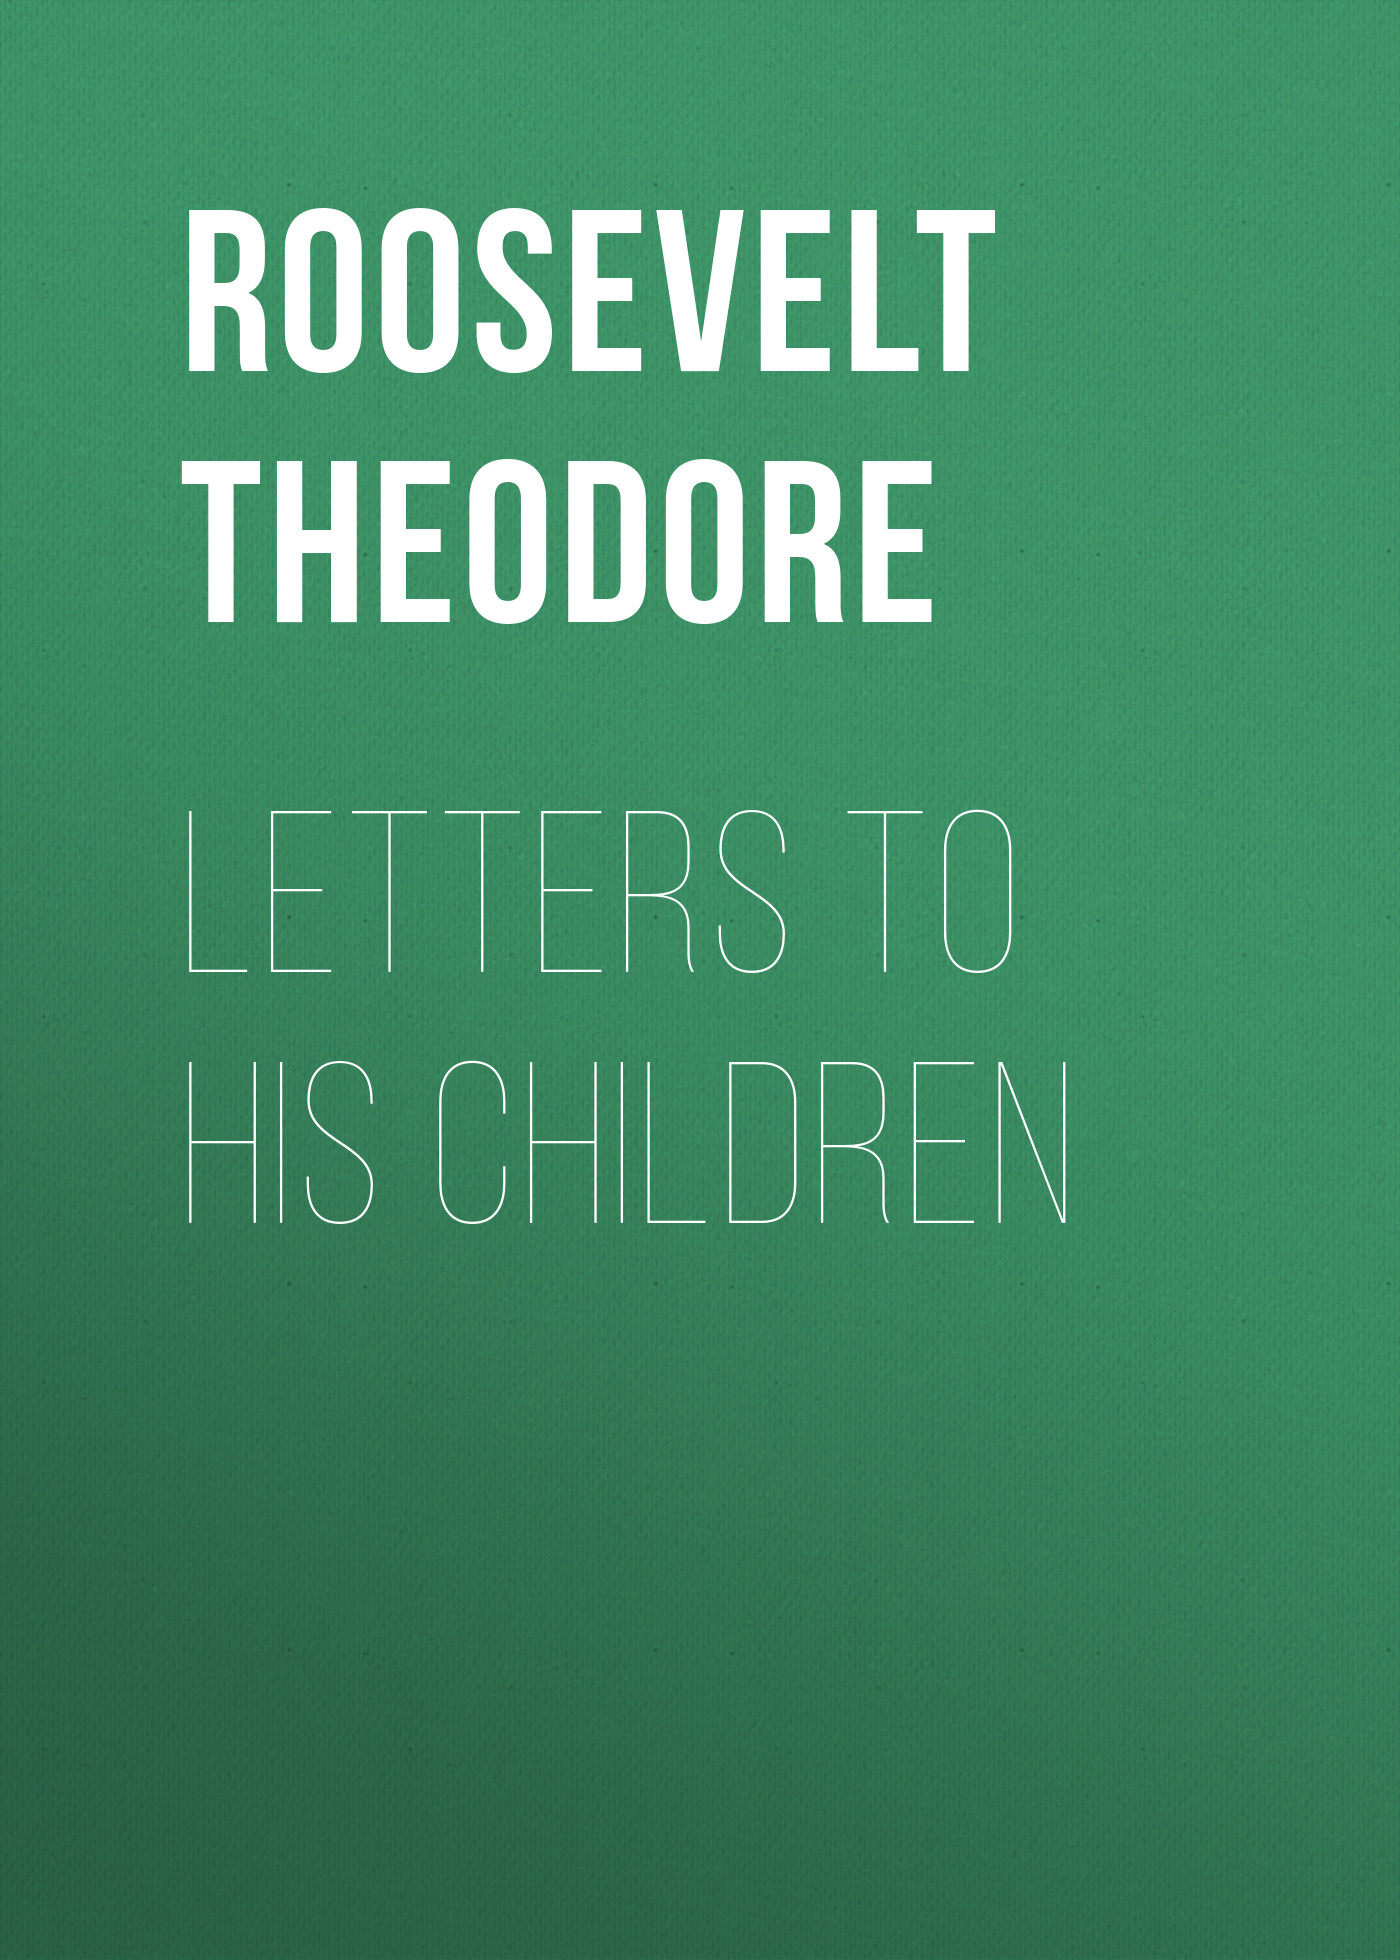 Roosevelt Theodore Letters to His Children my brother theodore roosevelt